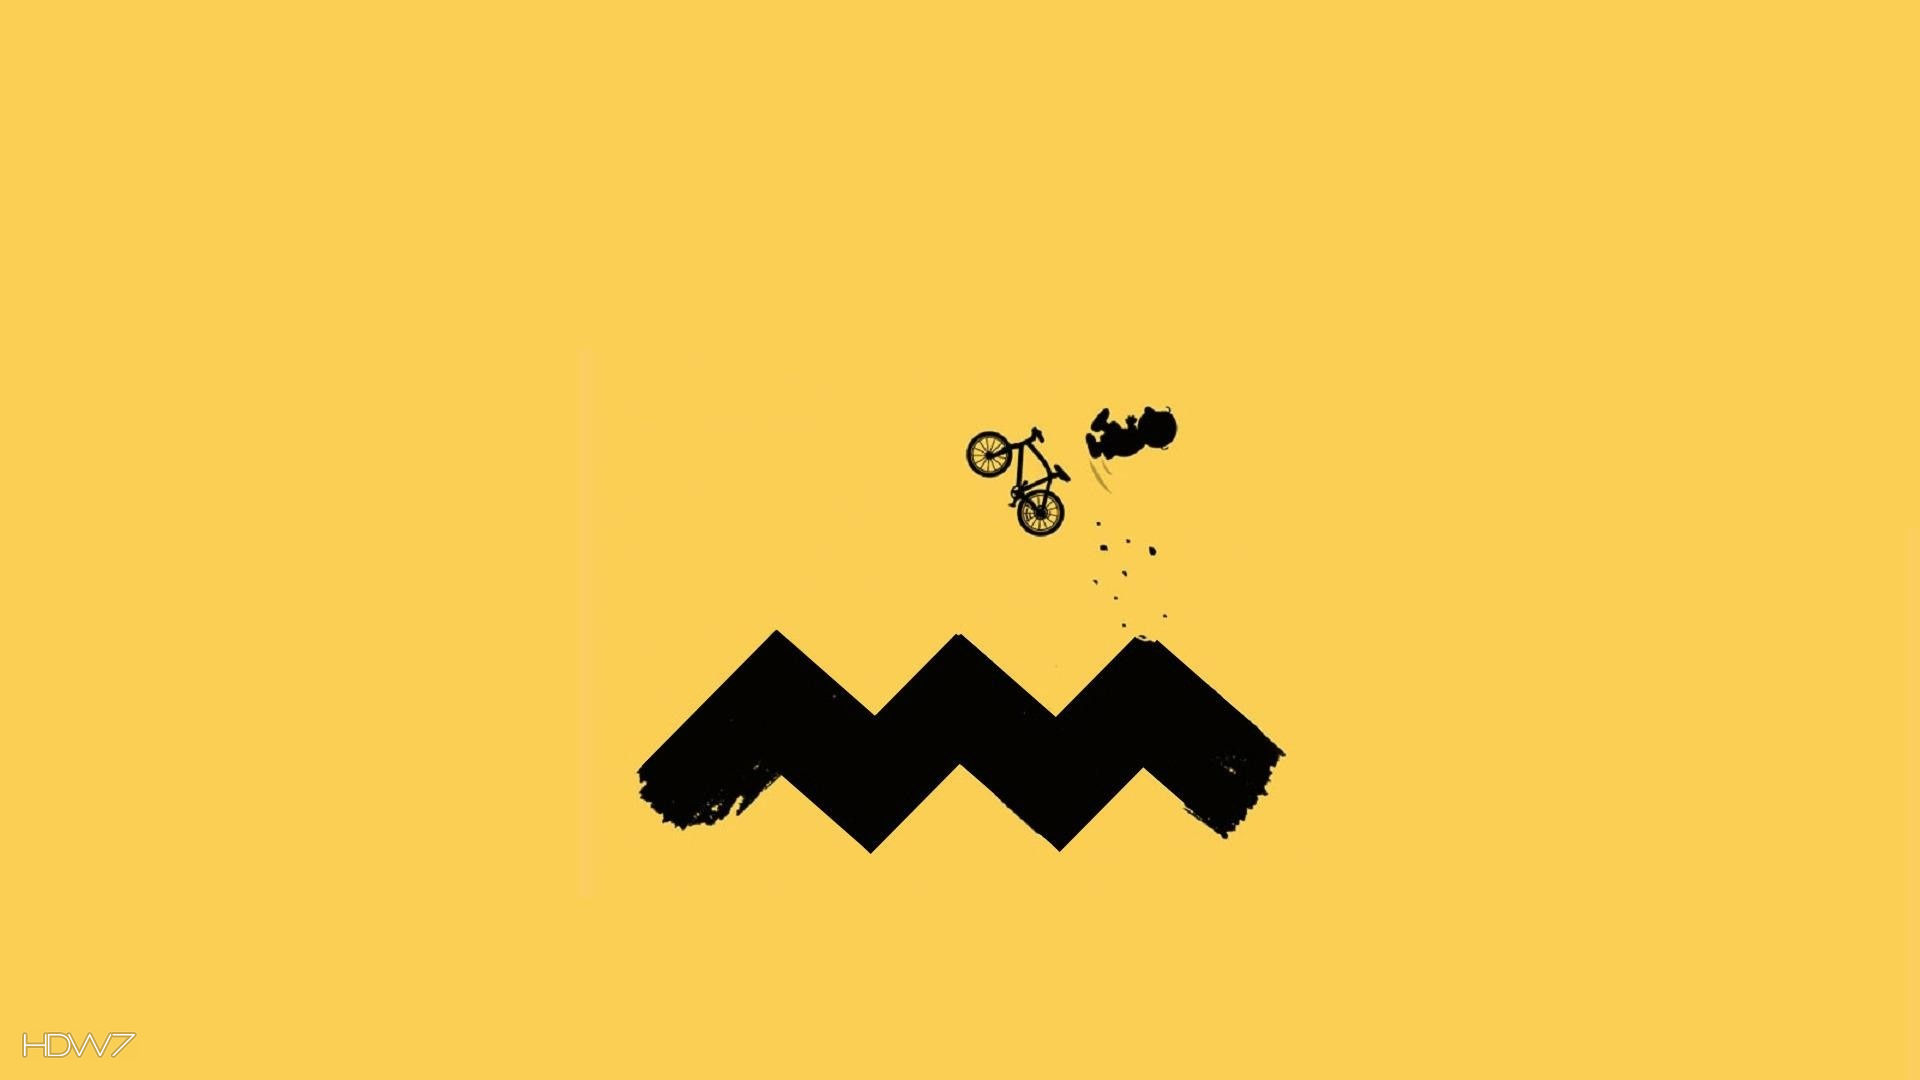 minimalistic funny charlie brown cycling 1920x1080